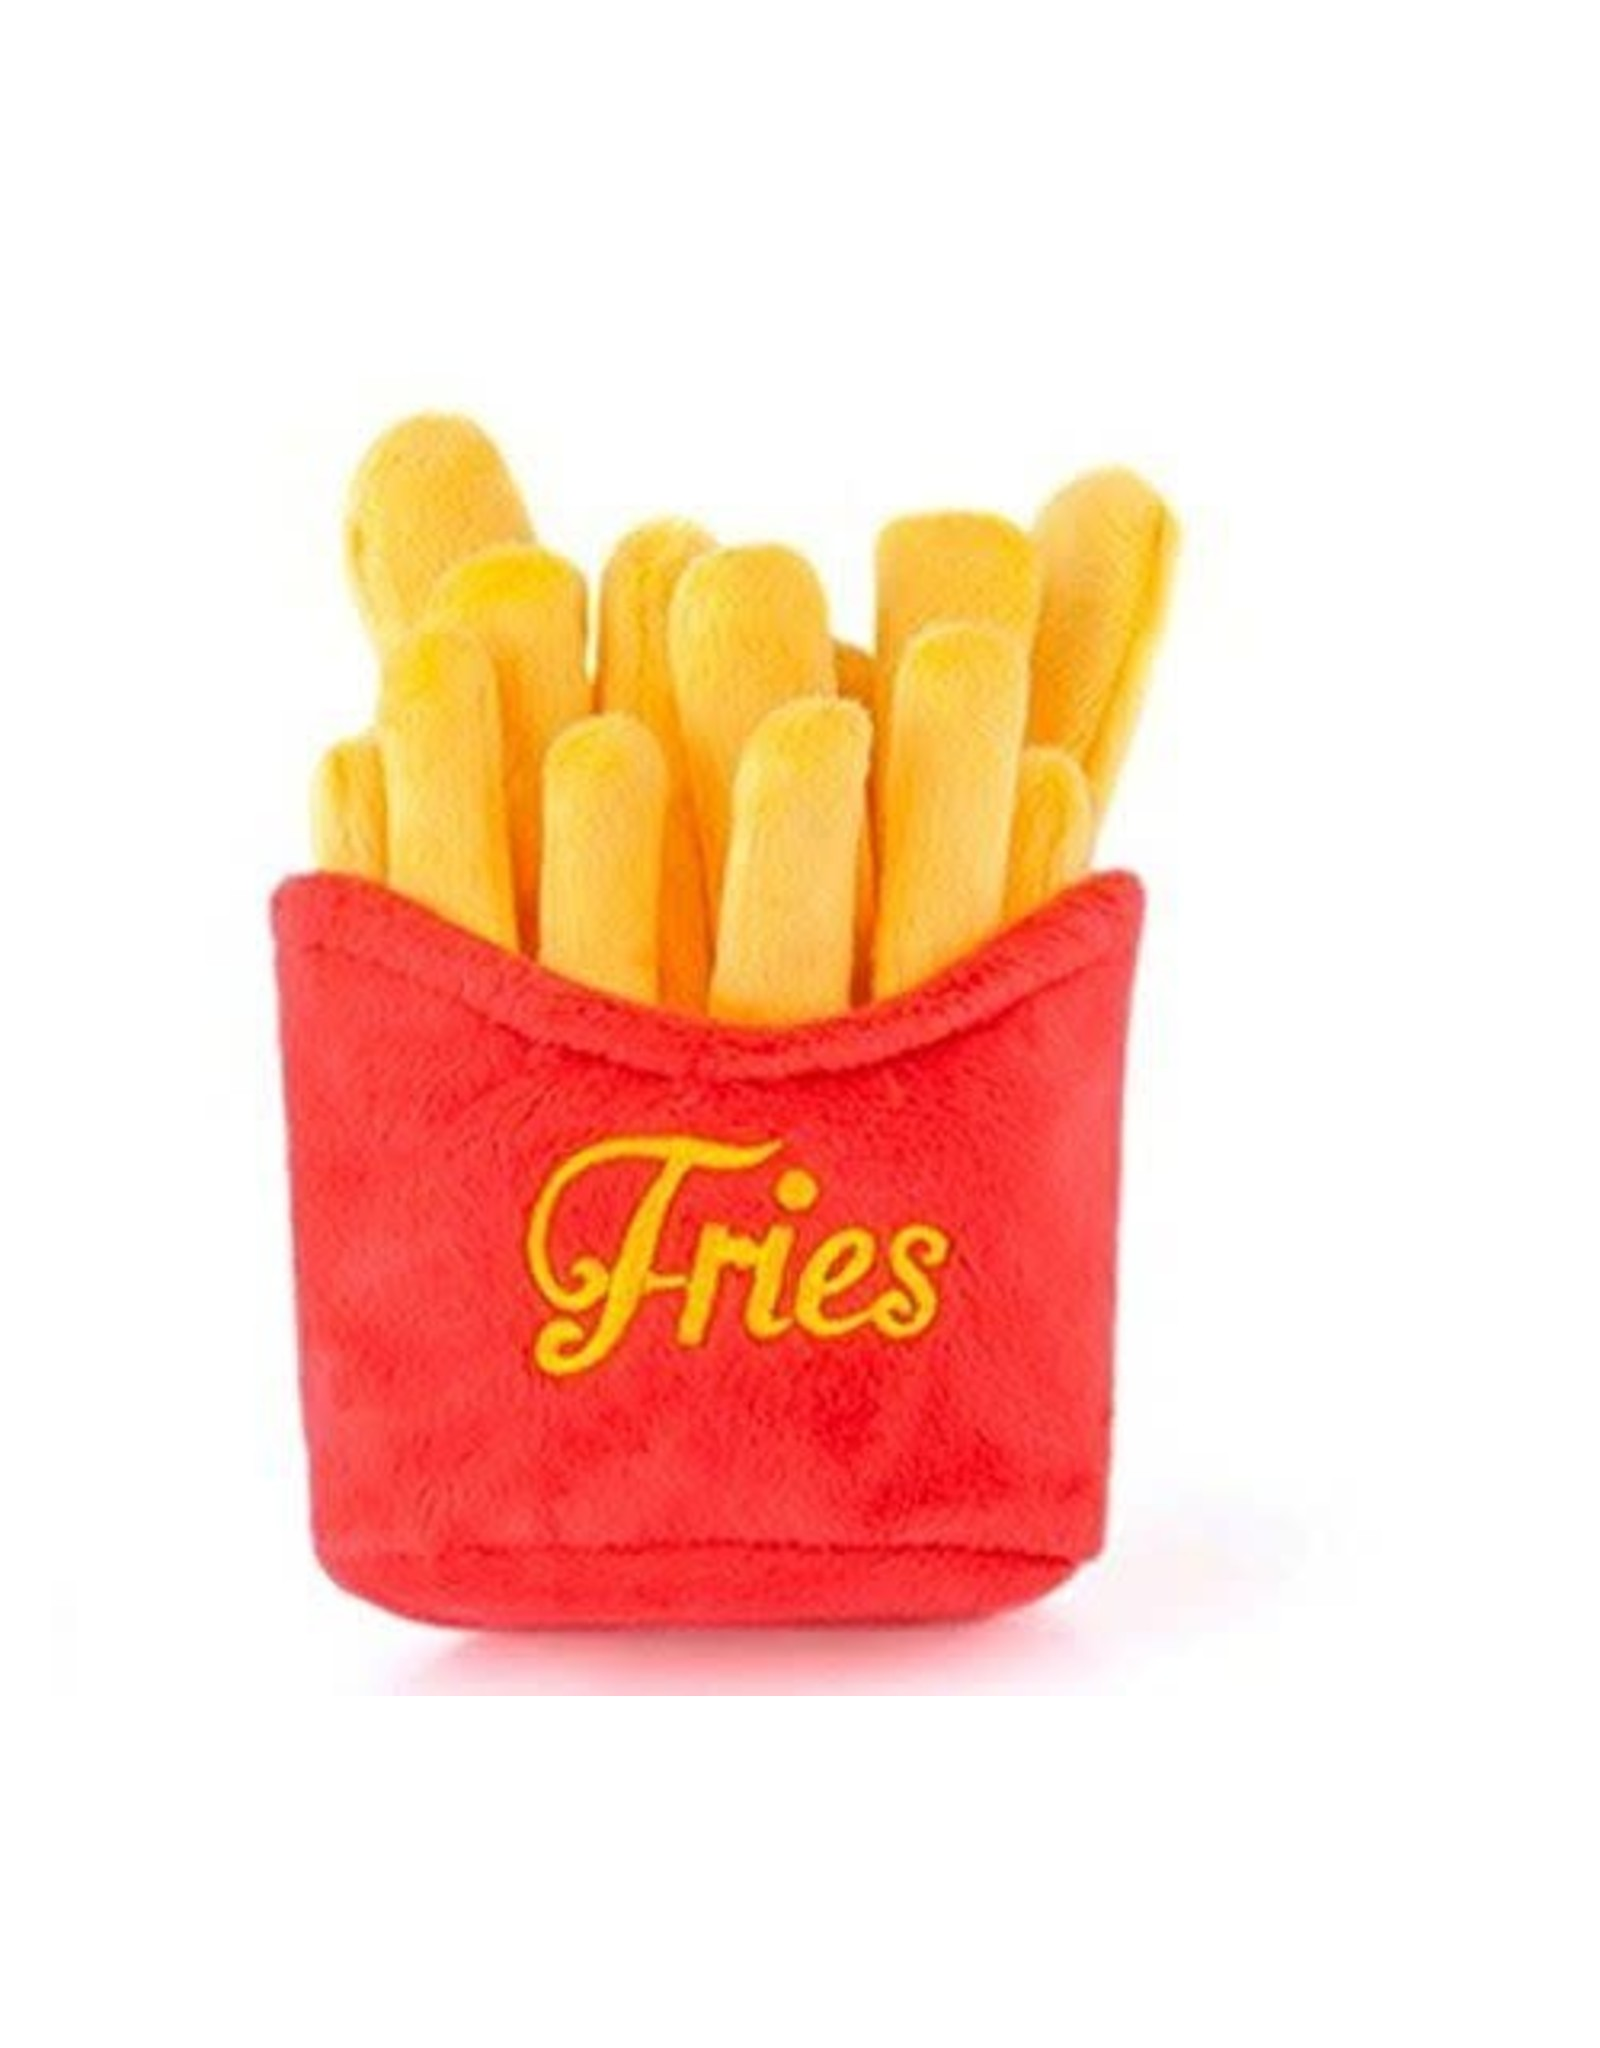 P.L.A.Y. Pet Lifestyle and You PLAY FRENCH FRIES PLUSH TOY